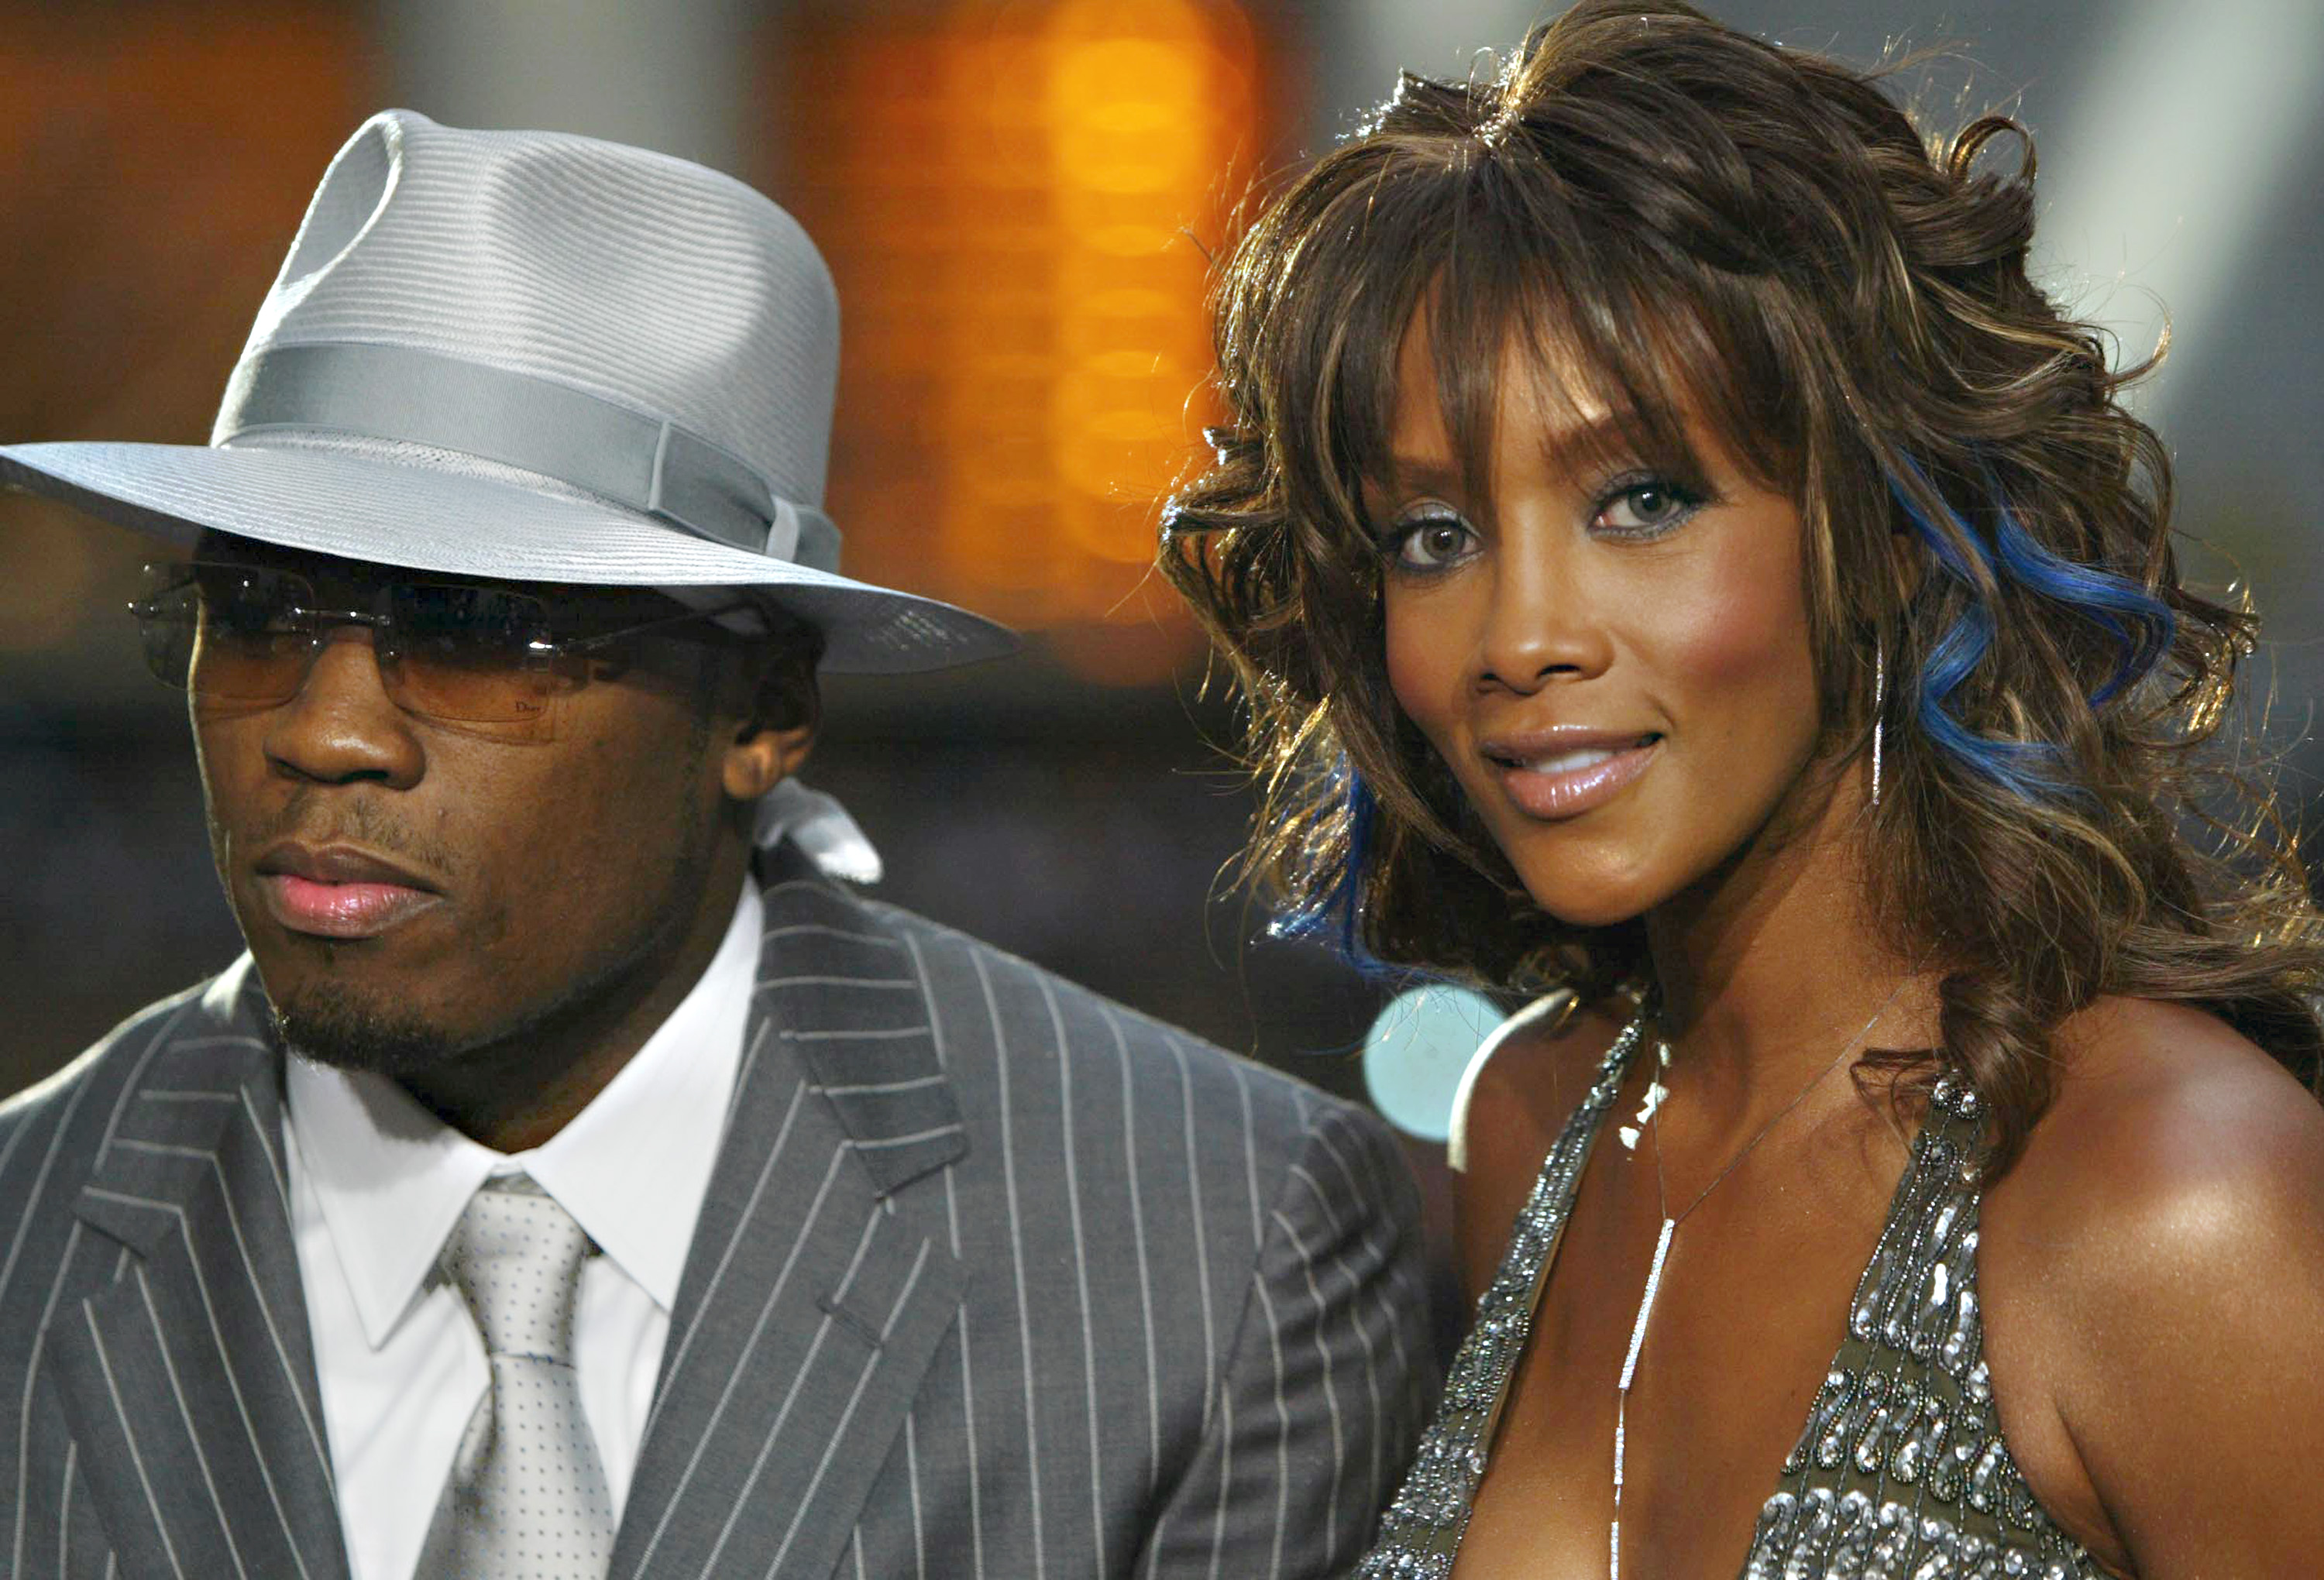 50 Cent and Vivica A. Fox